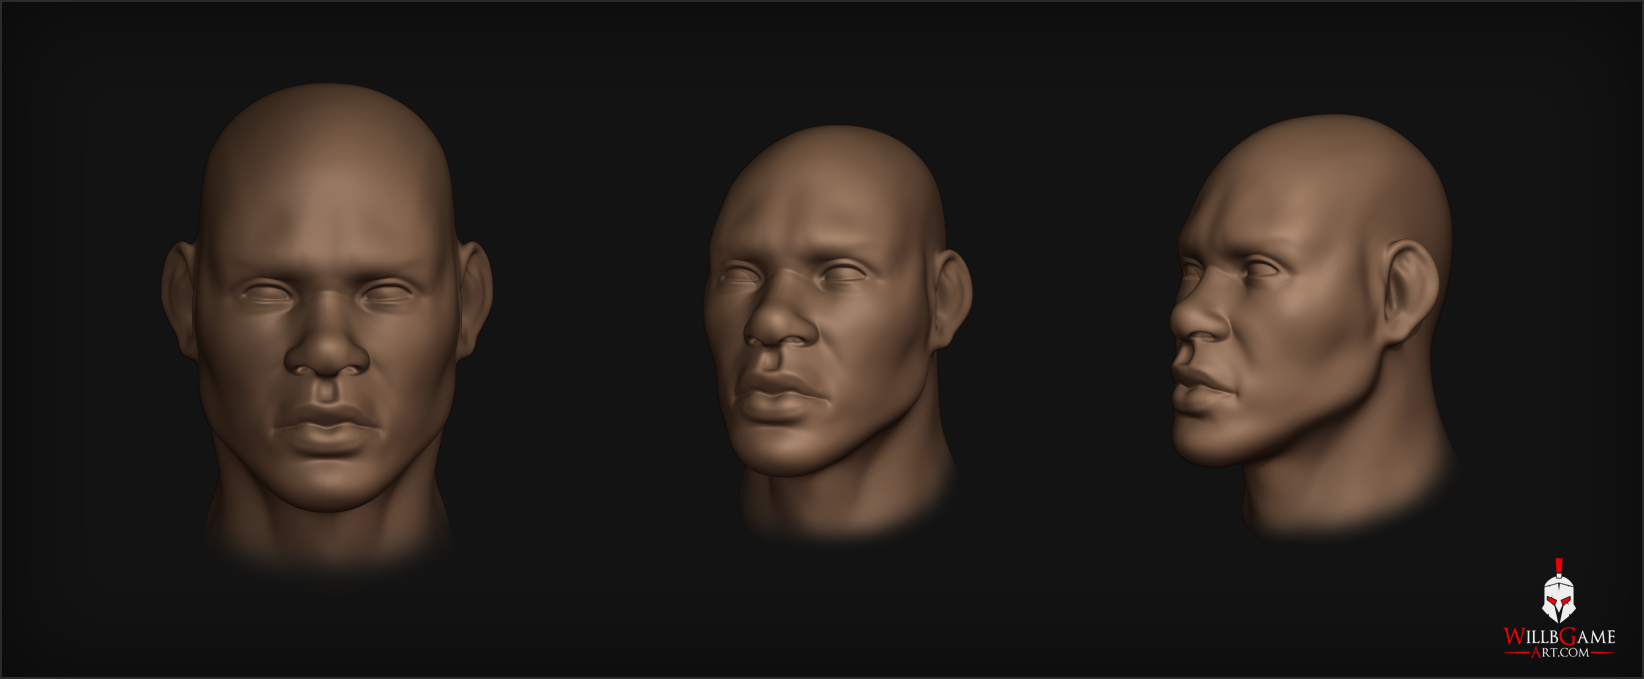 Male Face 04 Wip.png